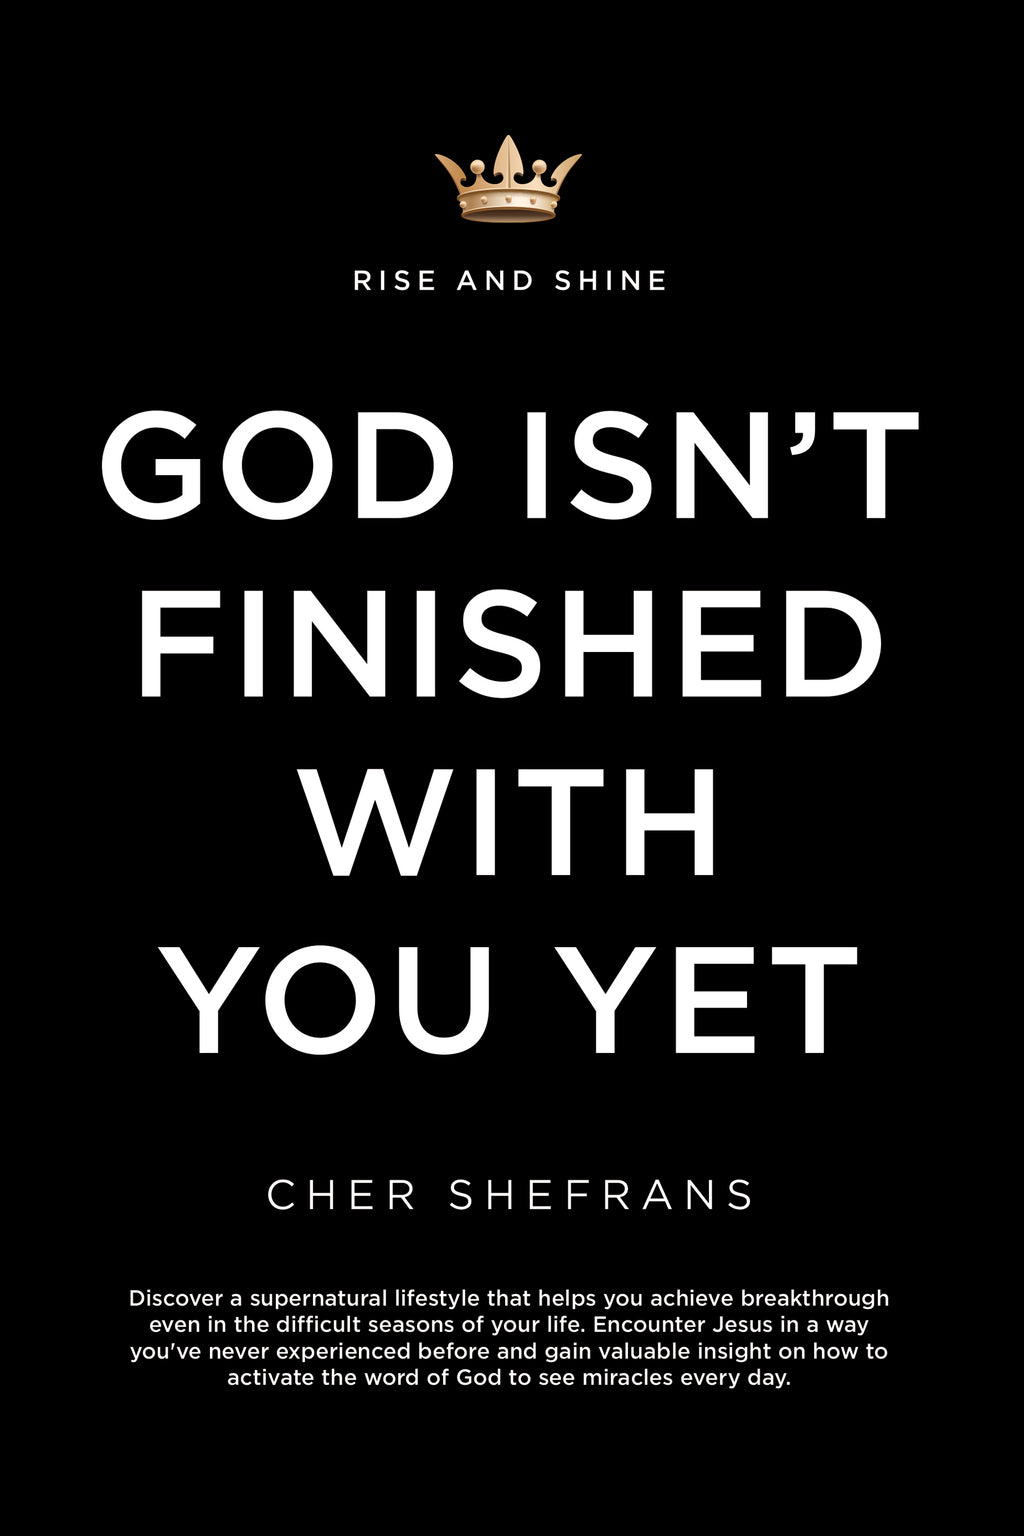 God Isn't Finished With You Yet